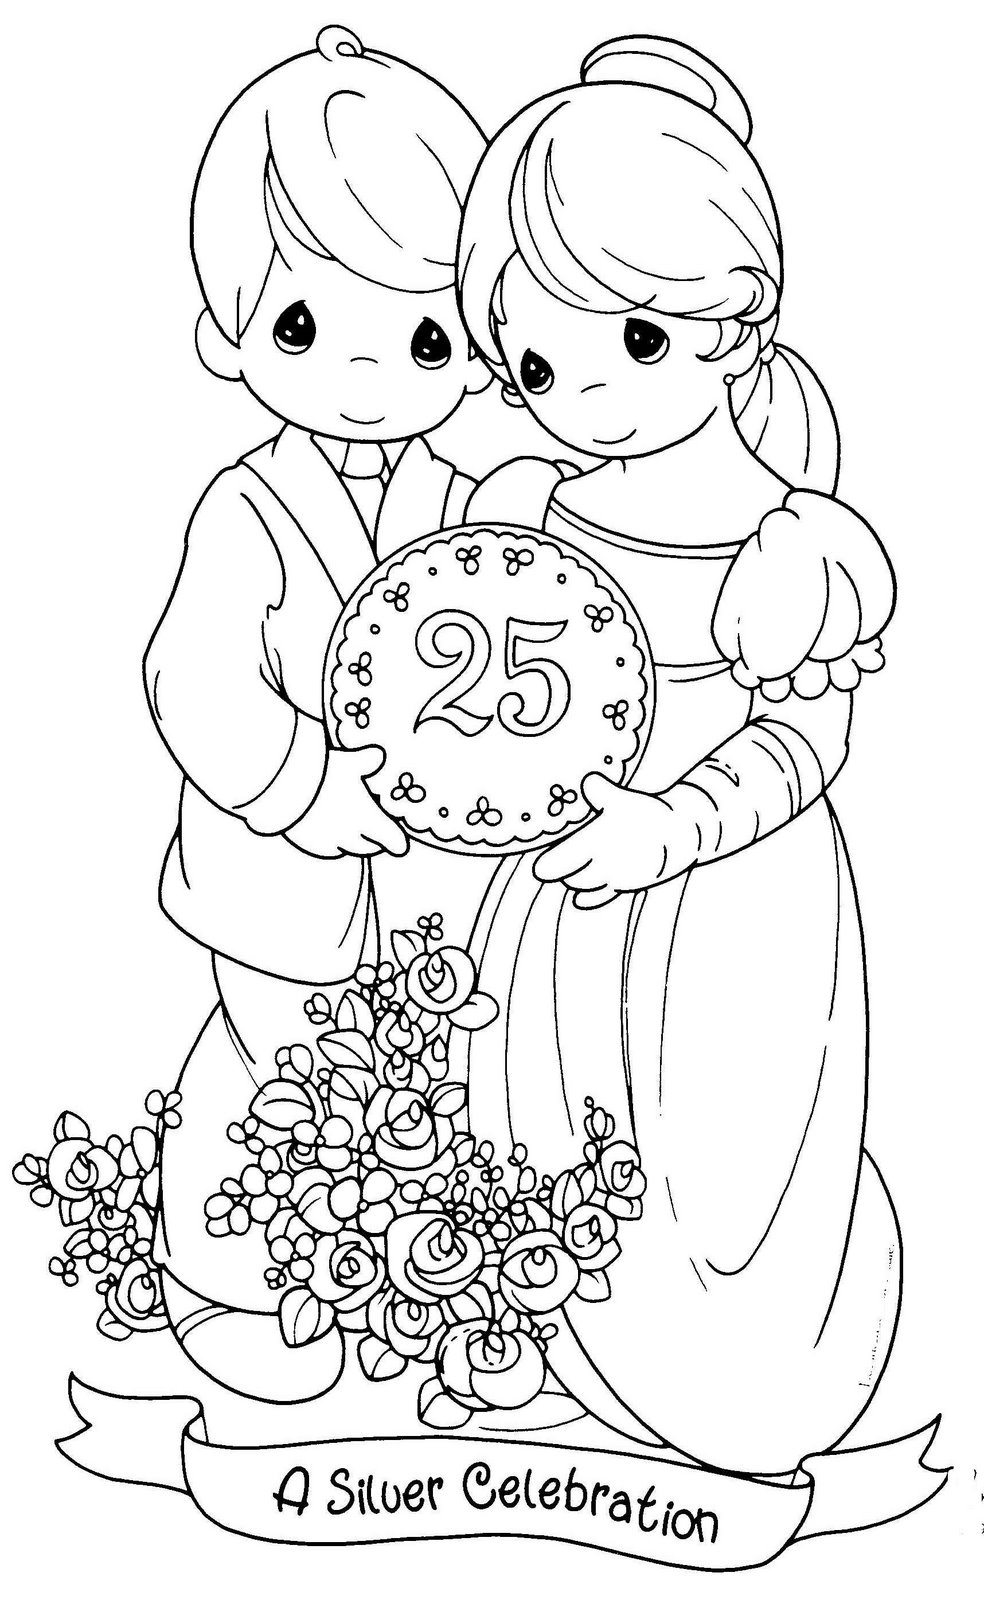 precious moments jesus loves me coloring pages | 1000+ images about EMB P M on Pinterest | Coloring, Free ...